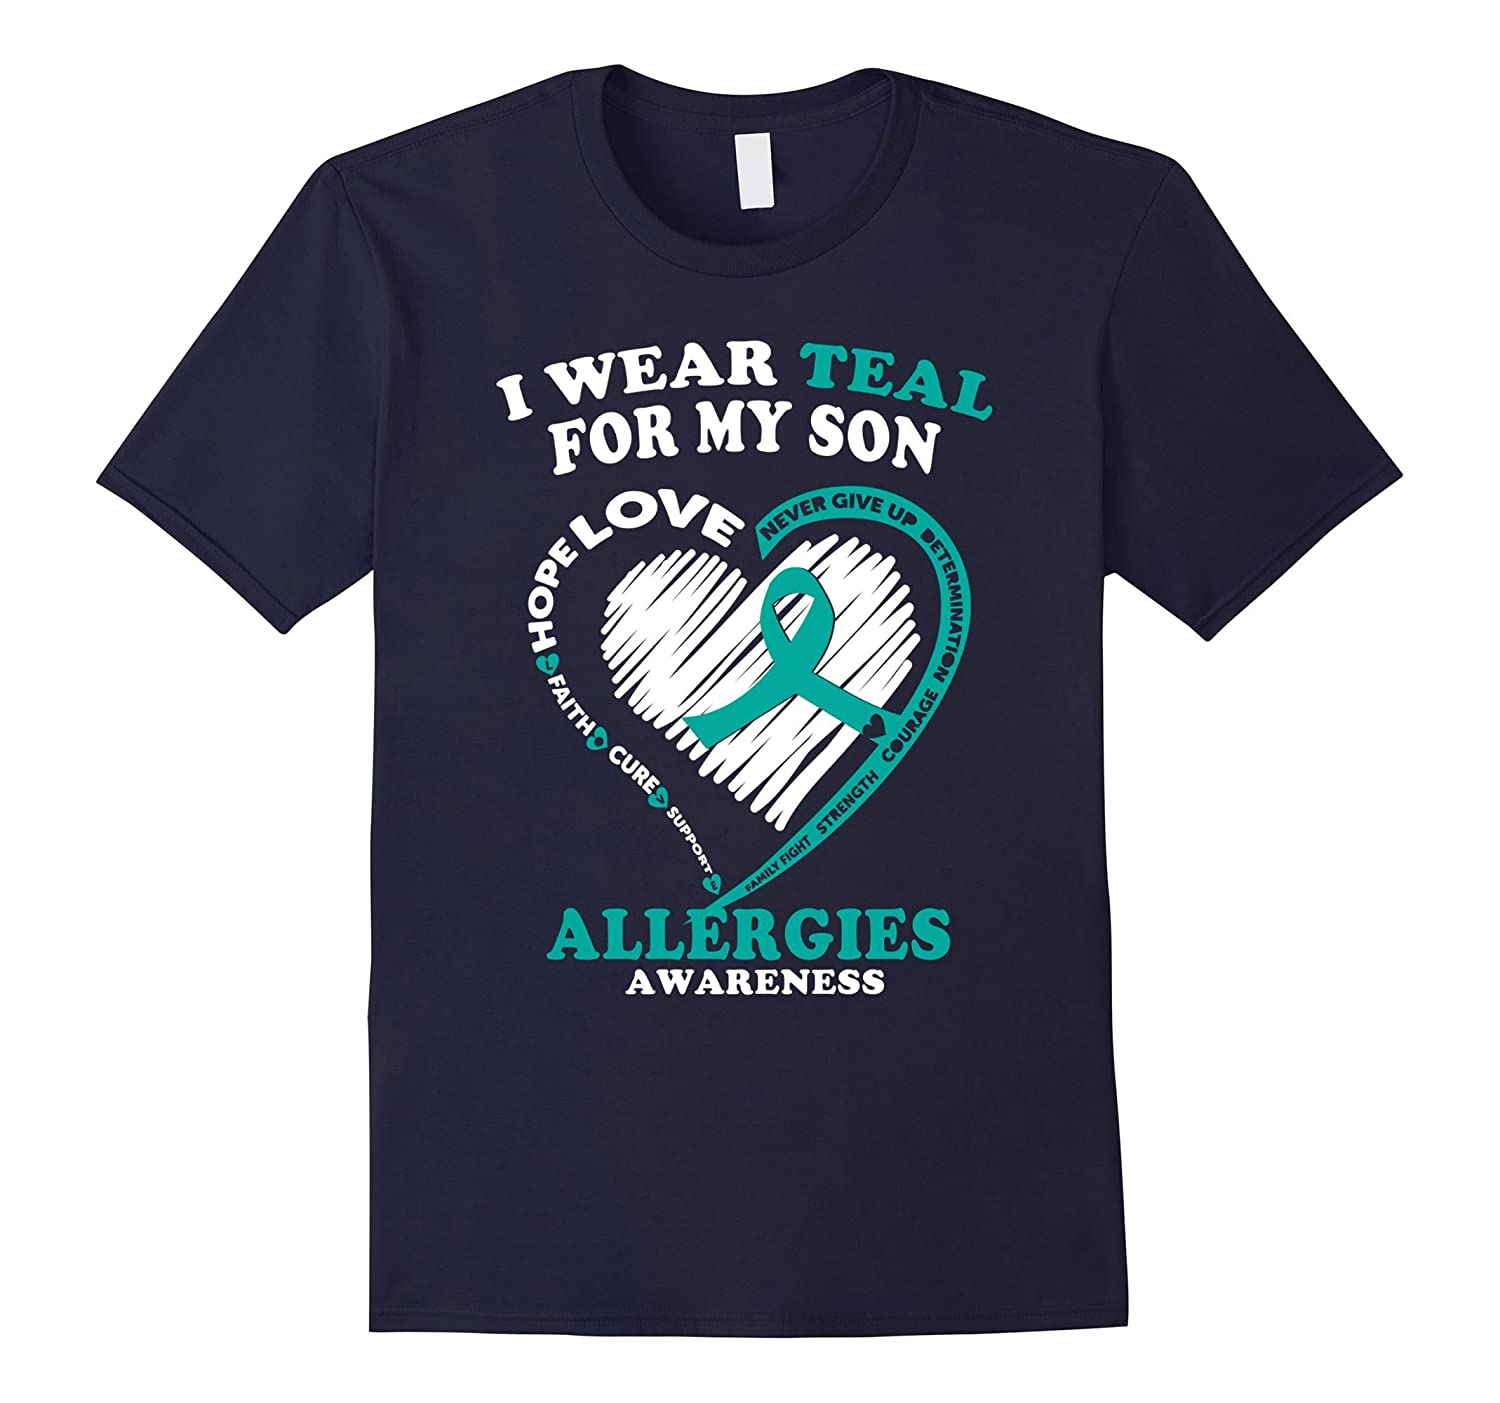 Allergies Awareness T Shirt - I Wear Teal For My Son-TH